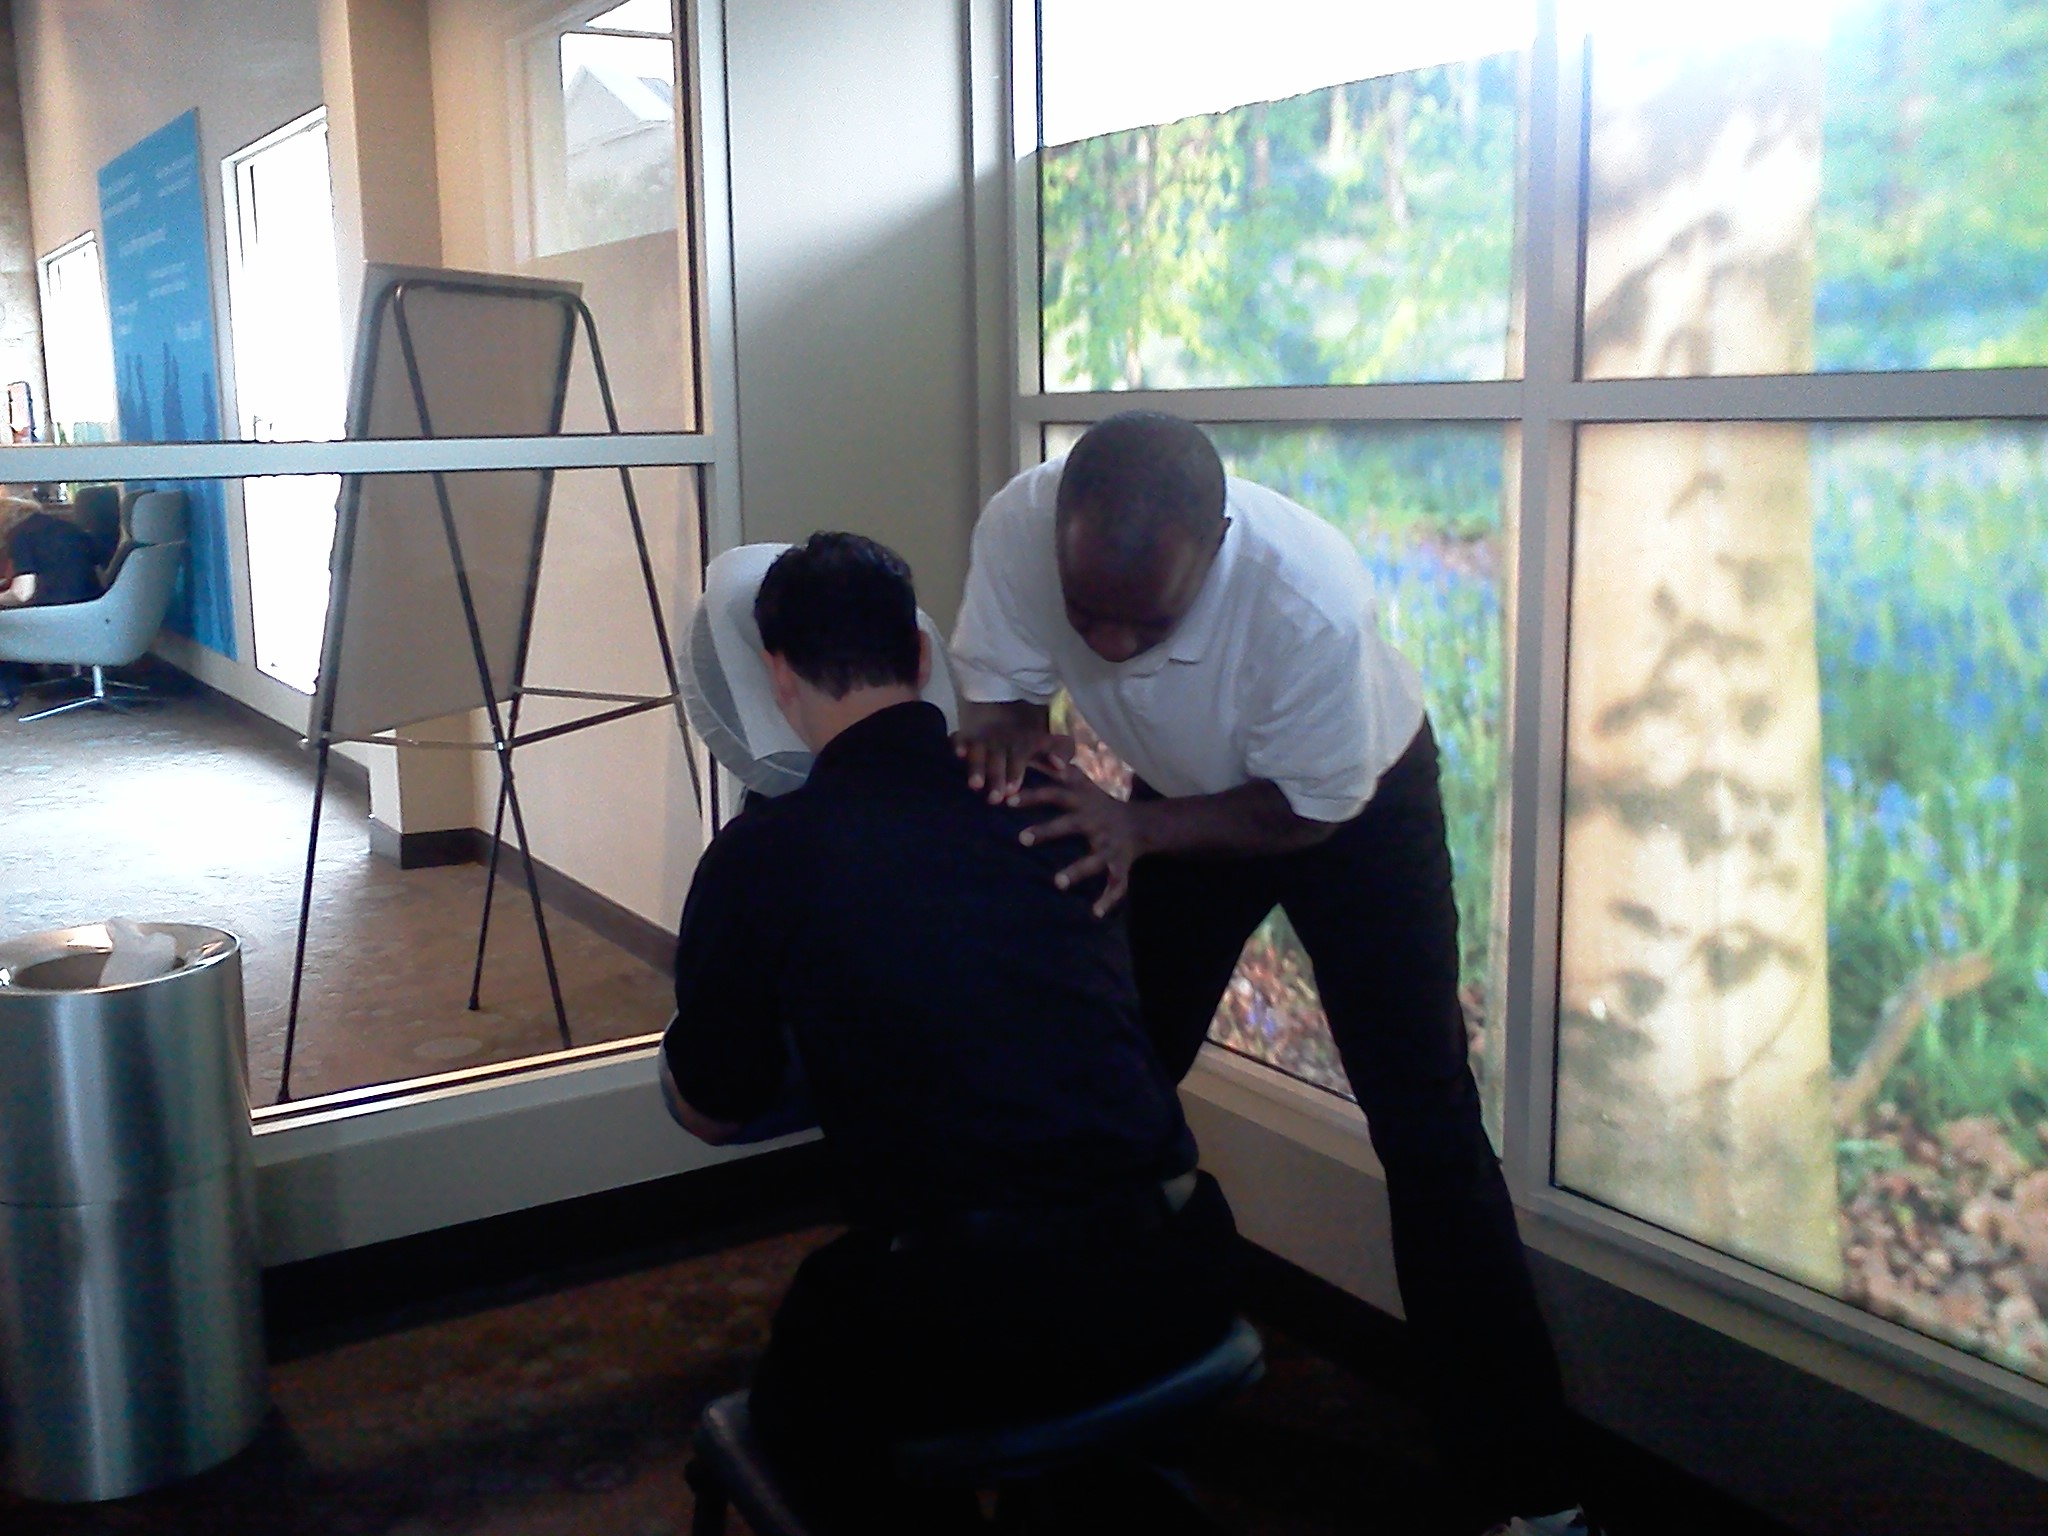 Orlando-Winter Park, Fl Mobile chair Massage - Male Therapist - Relax and Enjoy